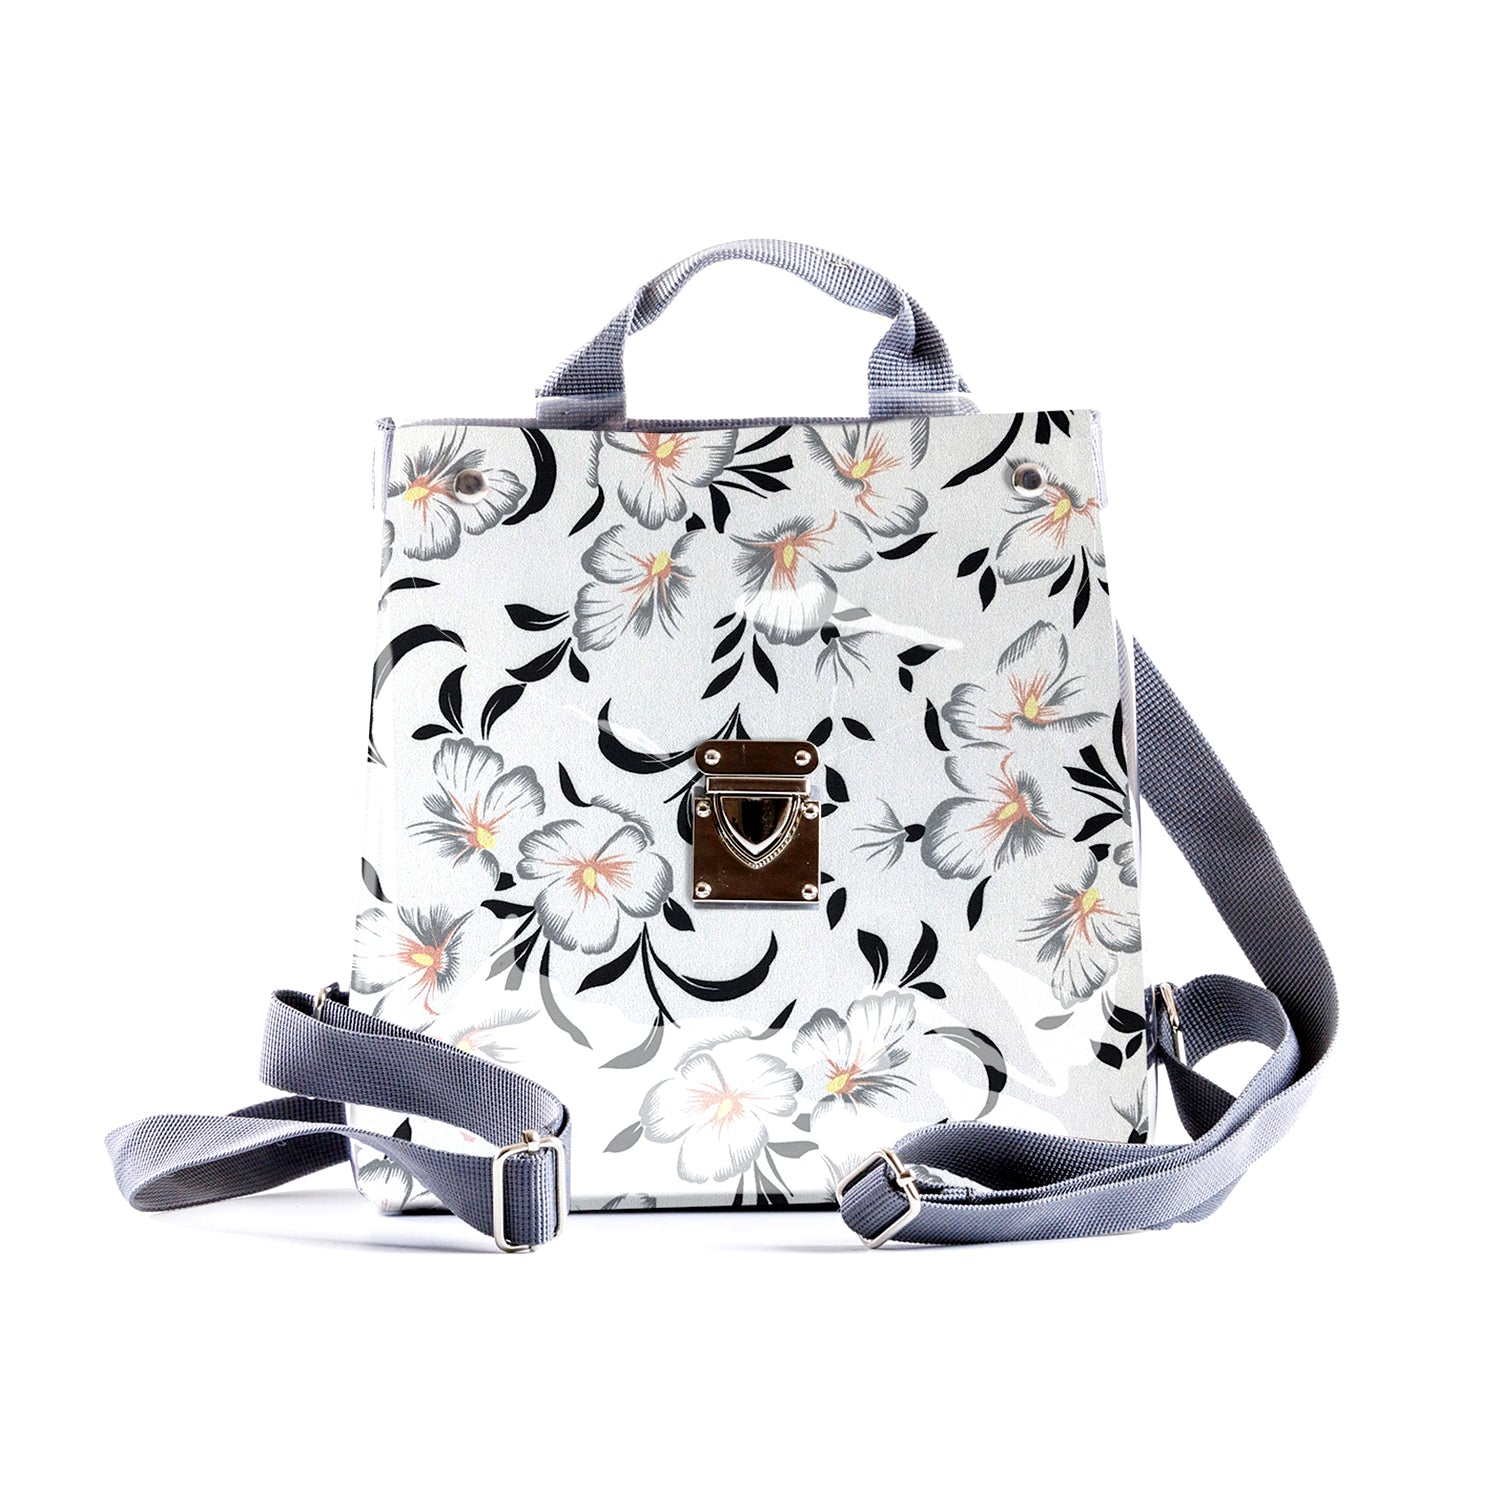 5a8667f417f White flowers - backpack · White flowers - backpack ...